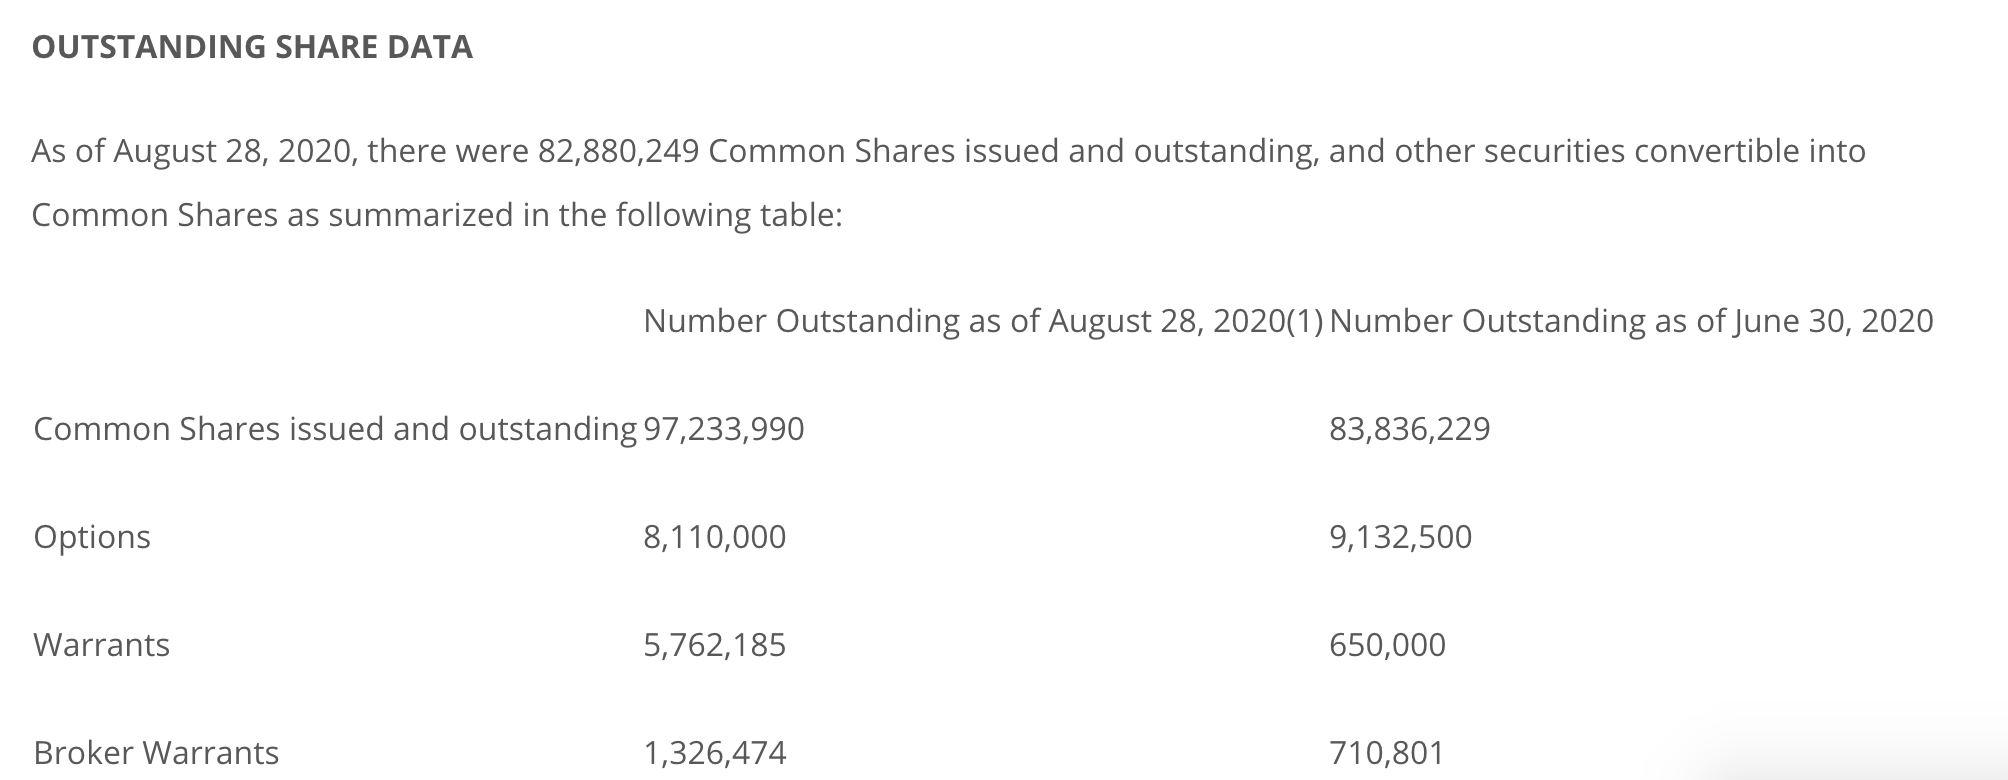 Table of Exro Technologies' outstanding share data, as of August 28, 2020.